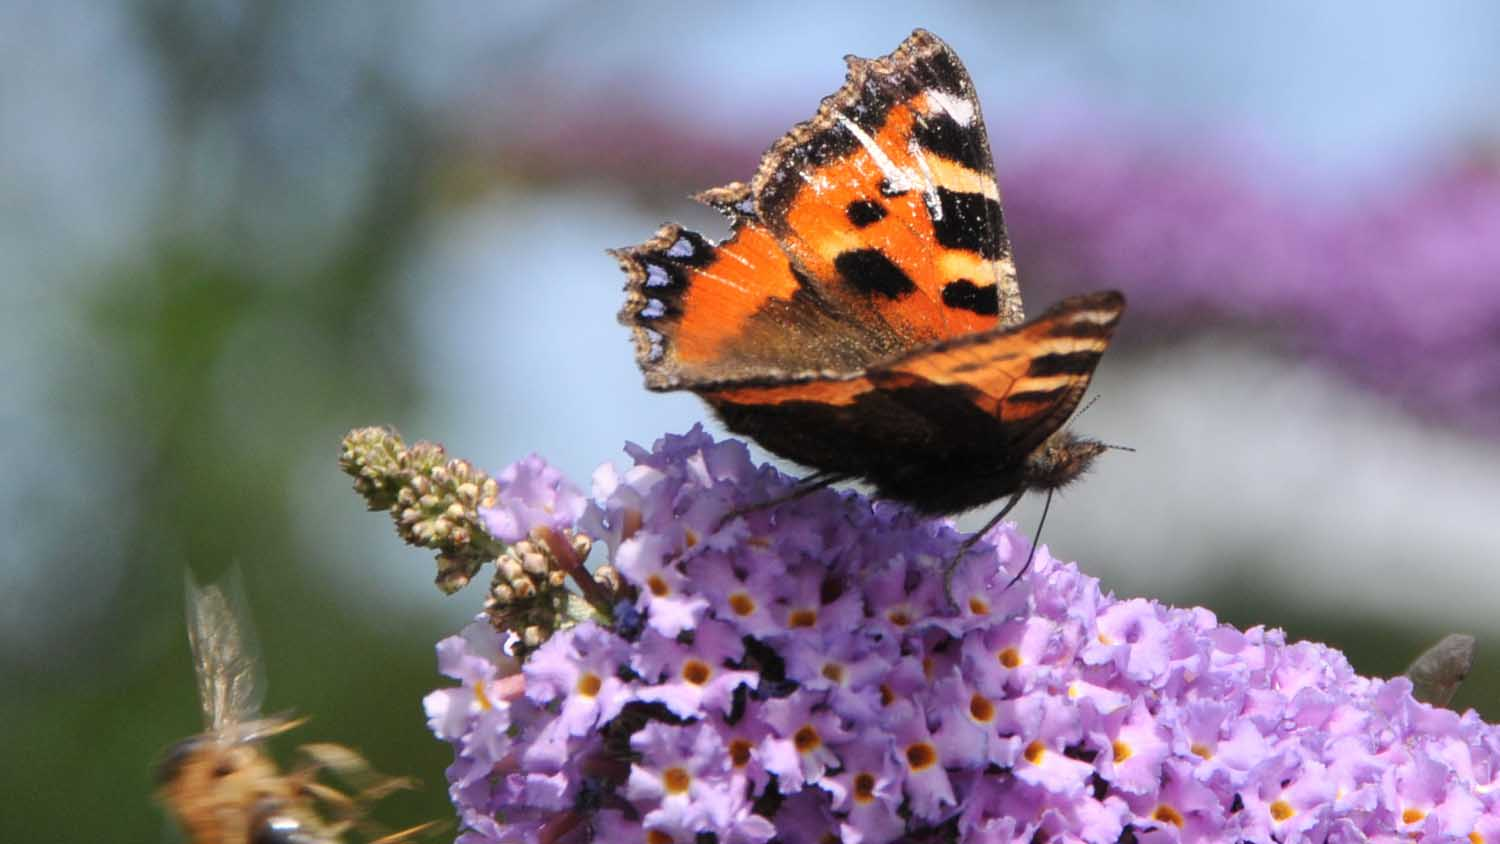 Subsidise butterflies and wildflowers but not food production, says National Trust boss